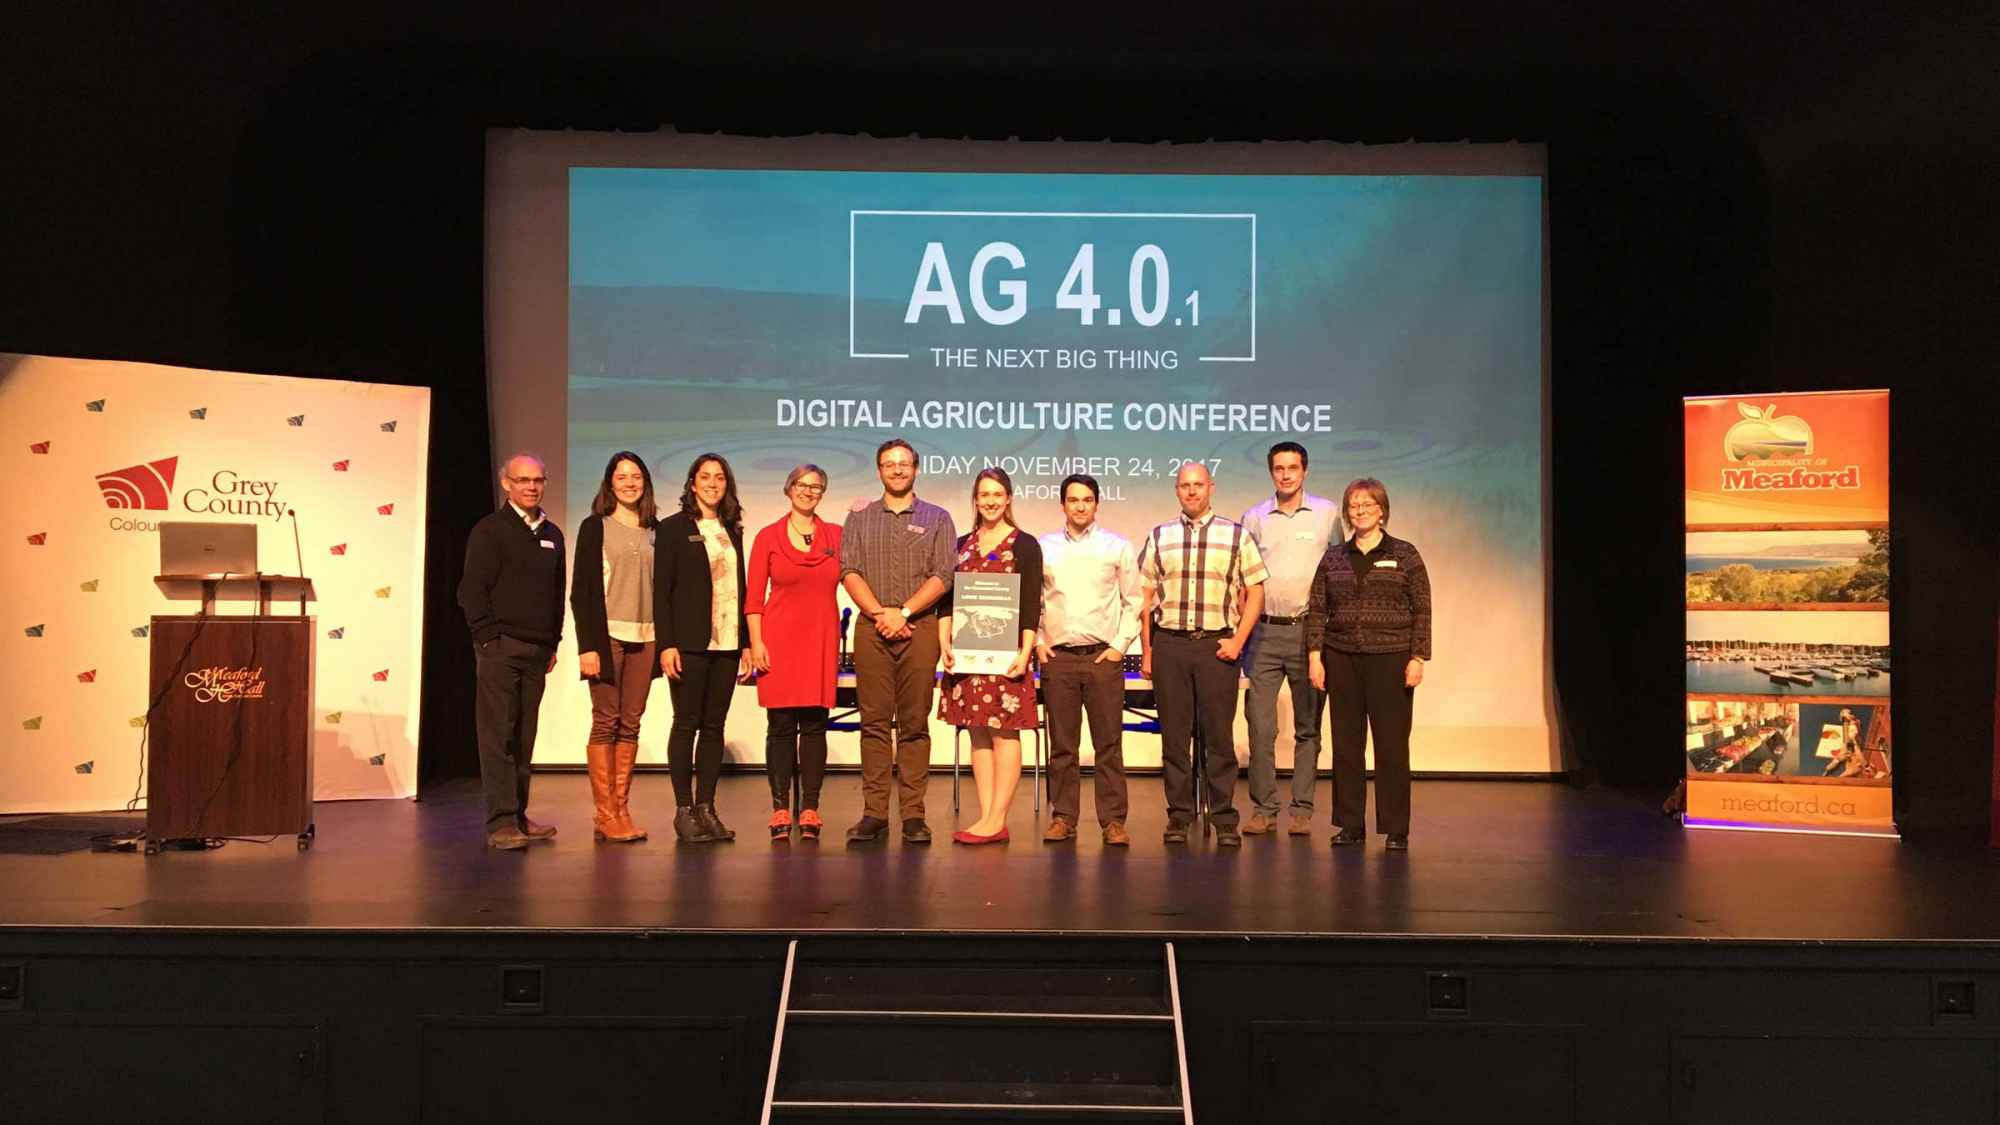 Grey County Staff at Ag 4.0